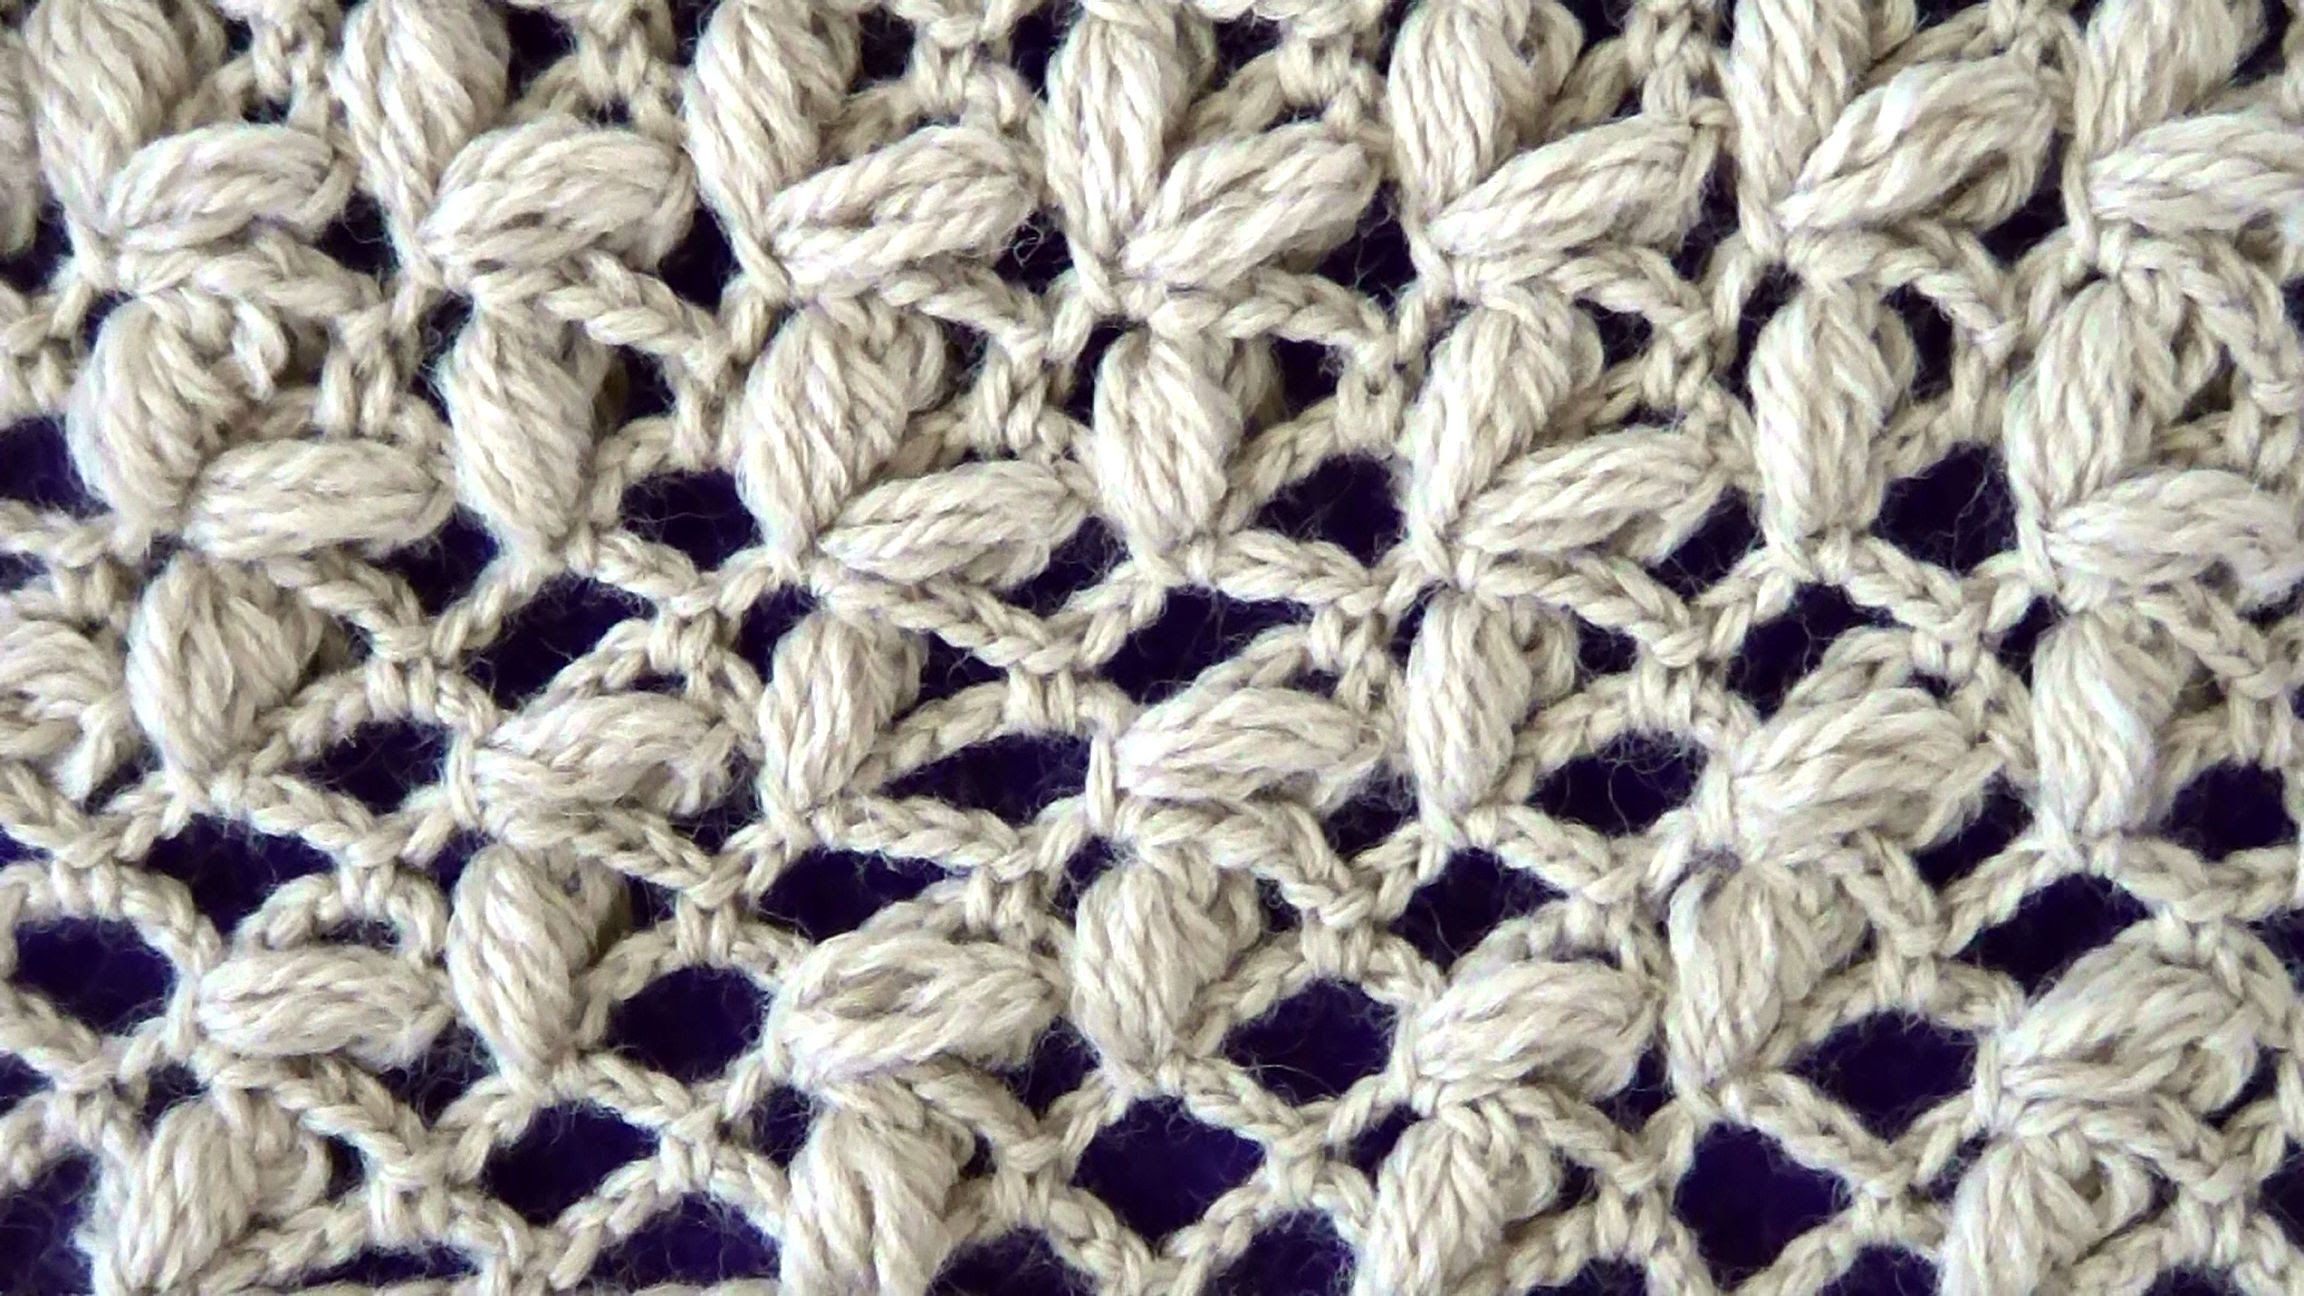 How to knit crochet openwork patterns 96